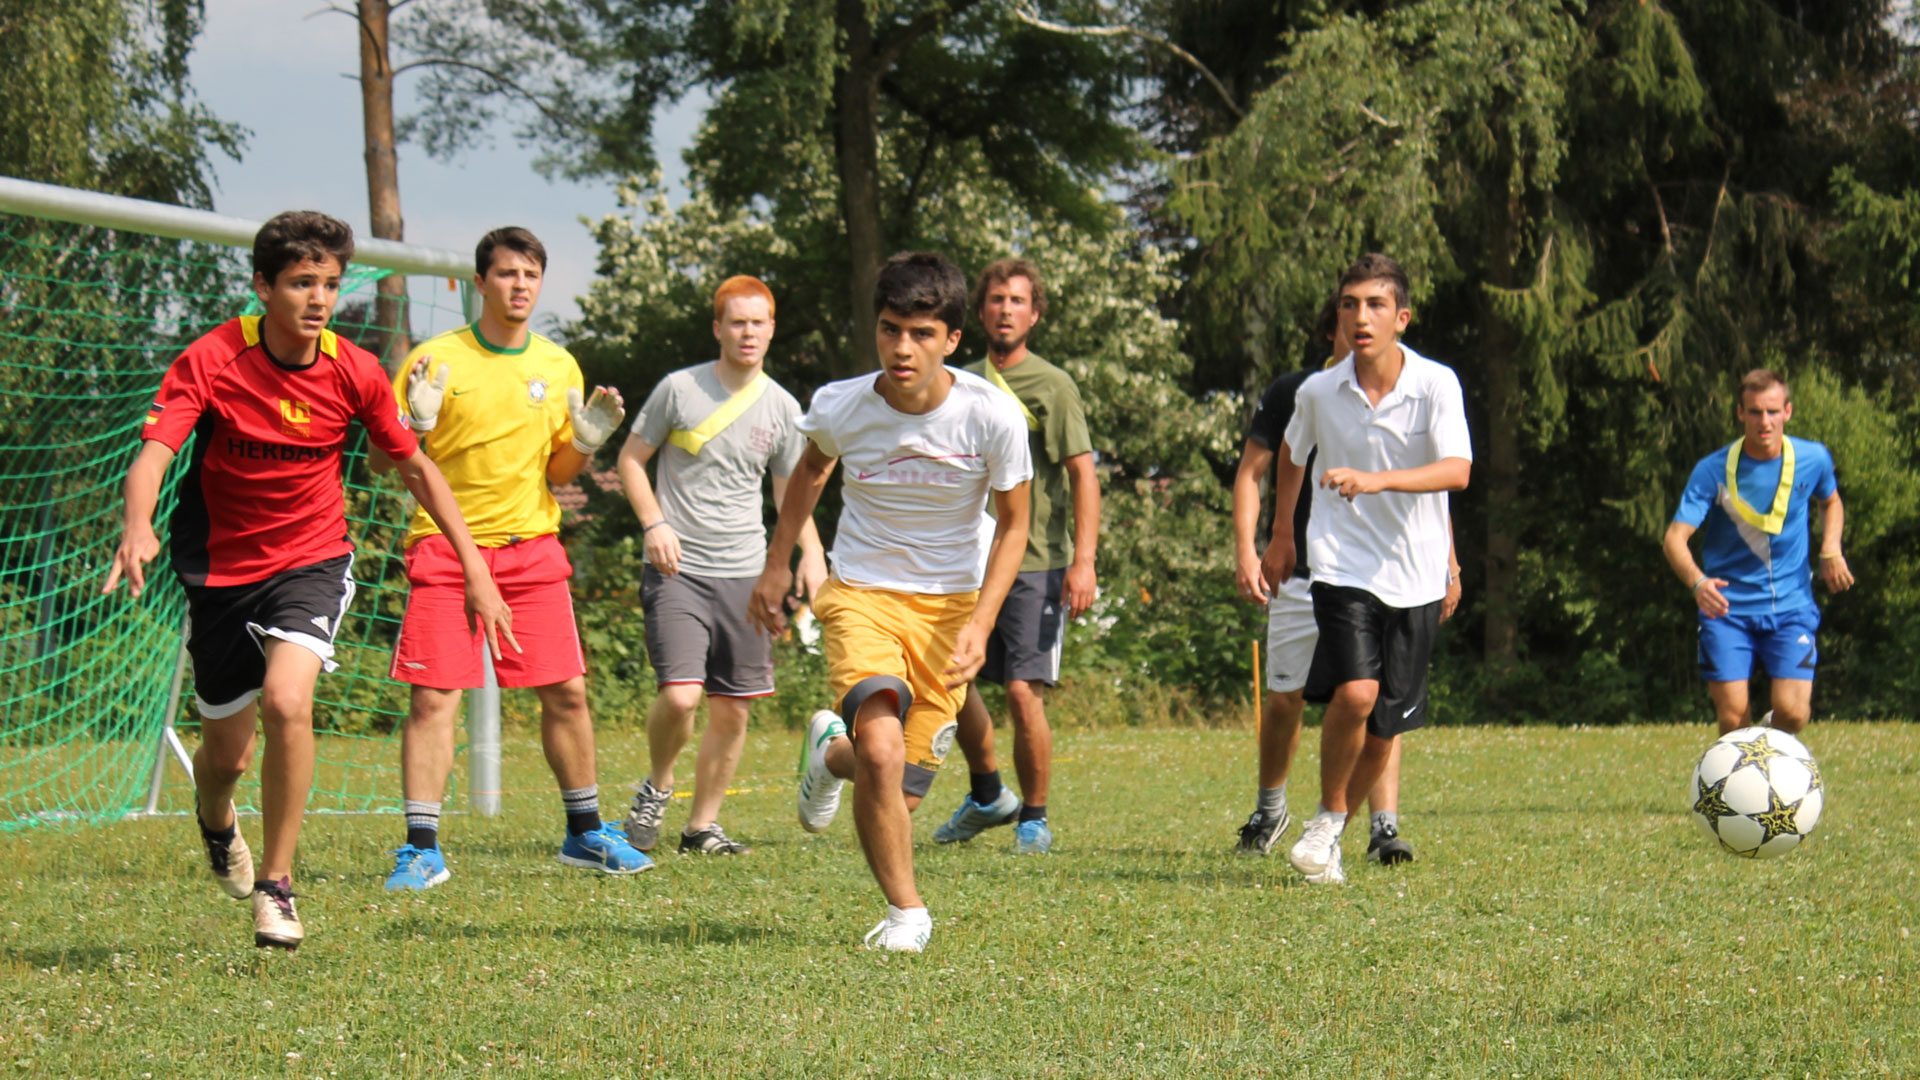 Playing football on the school's campus